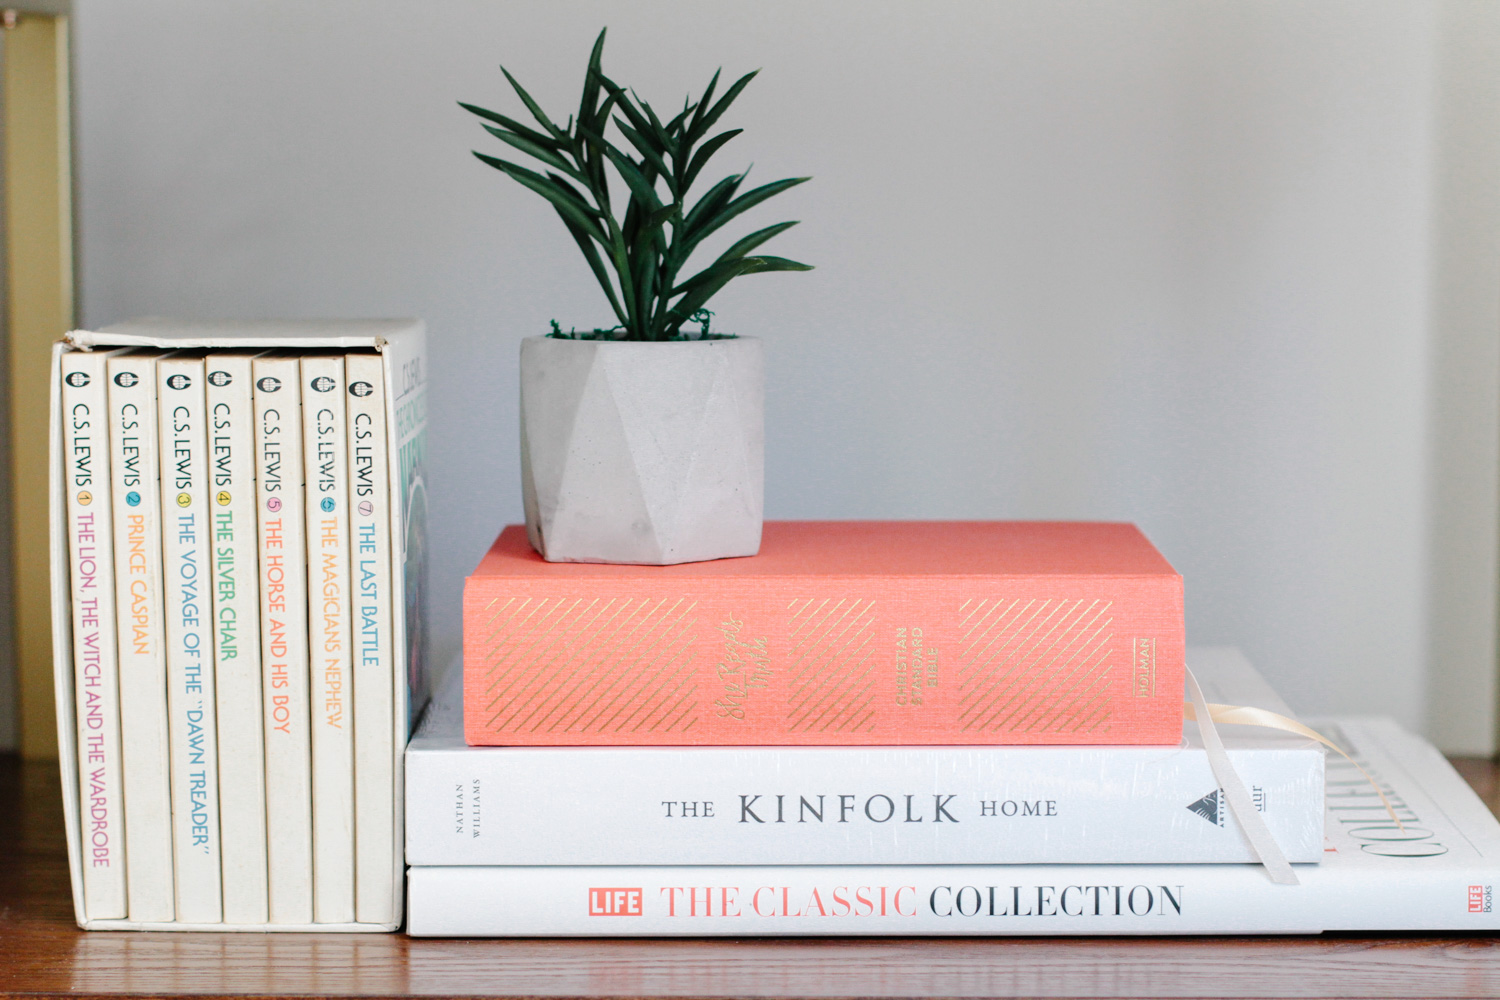 Modern Colonial Entryway Shelf Styled with Books